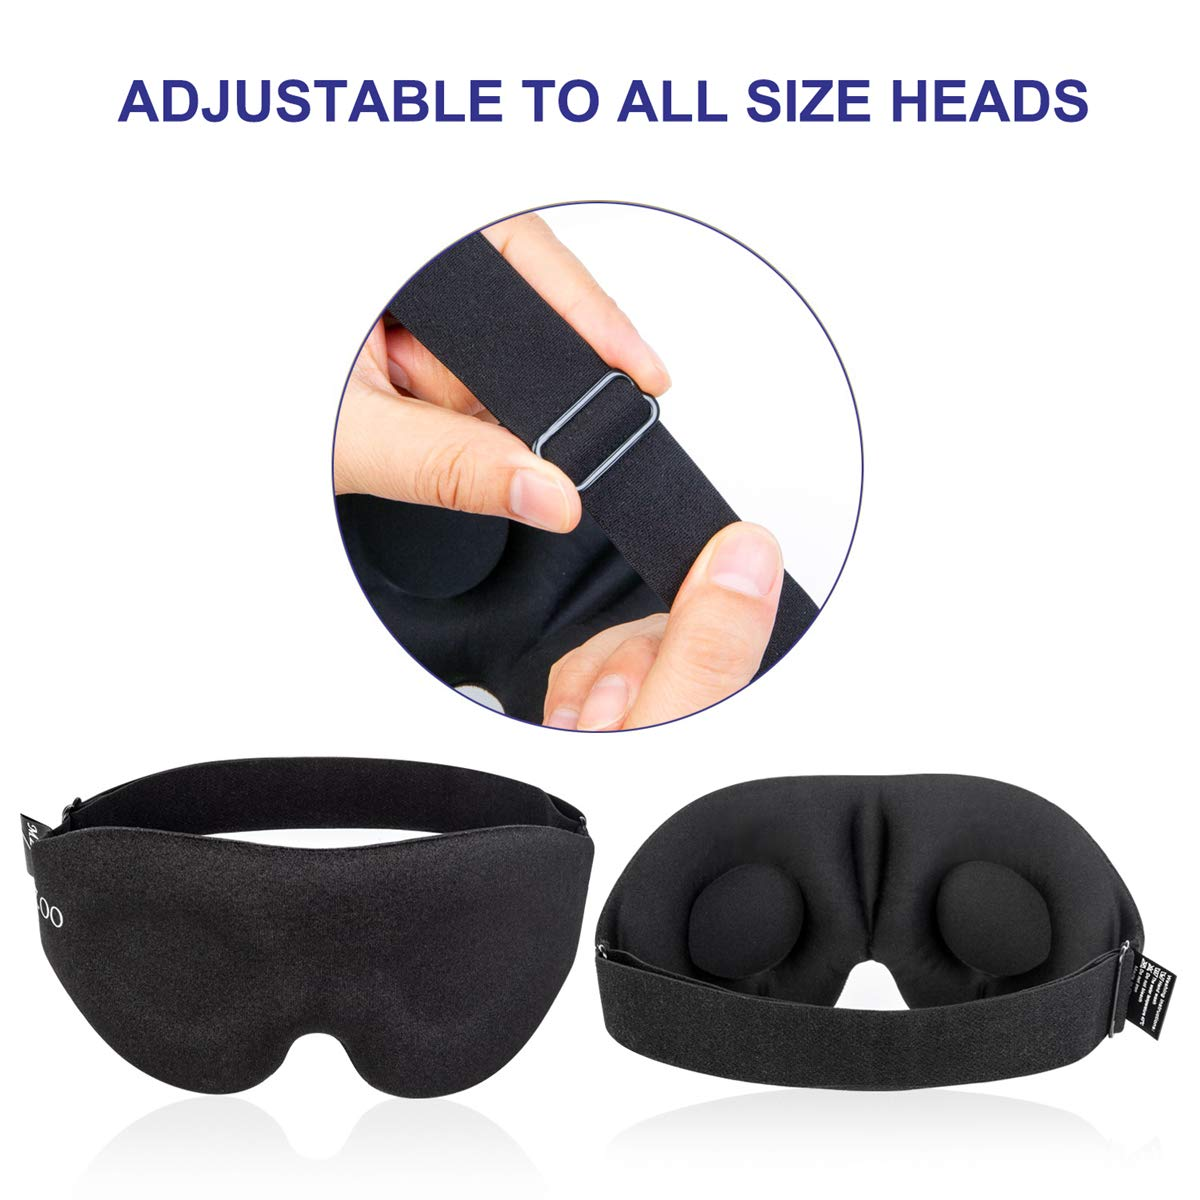 MZOO Sleep Eye Mask for Men Women 3D Contoured Cup Sleeping Mask  Blindfold with Ear Plug Concave